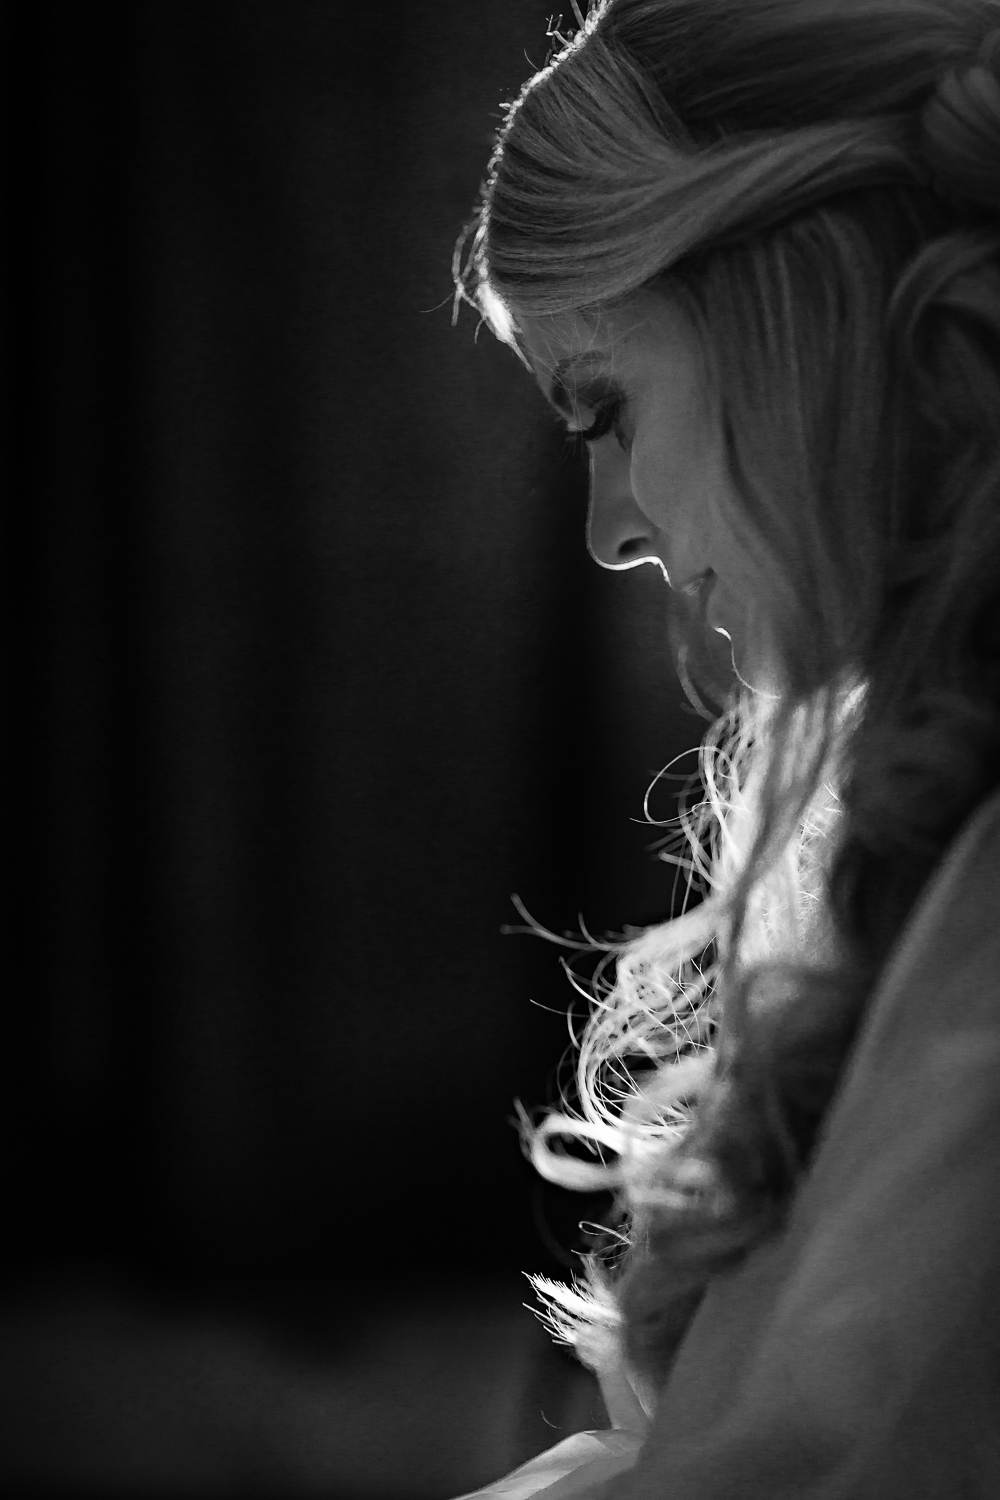 bozeman-montana-wedding-roys-barn-brides-hair-being-fixed.jpg